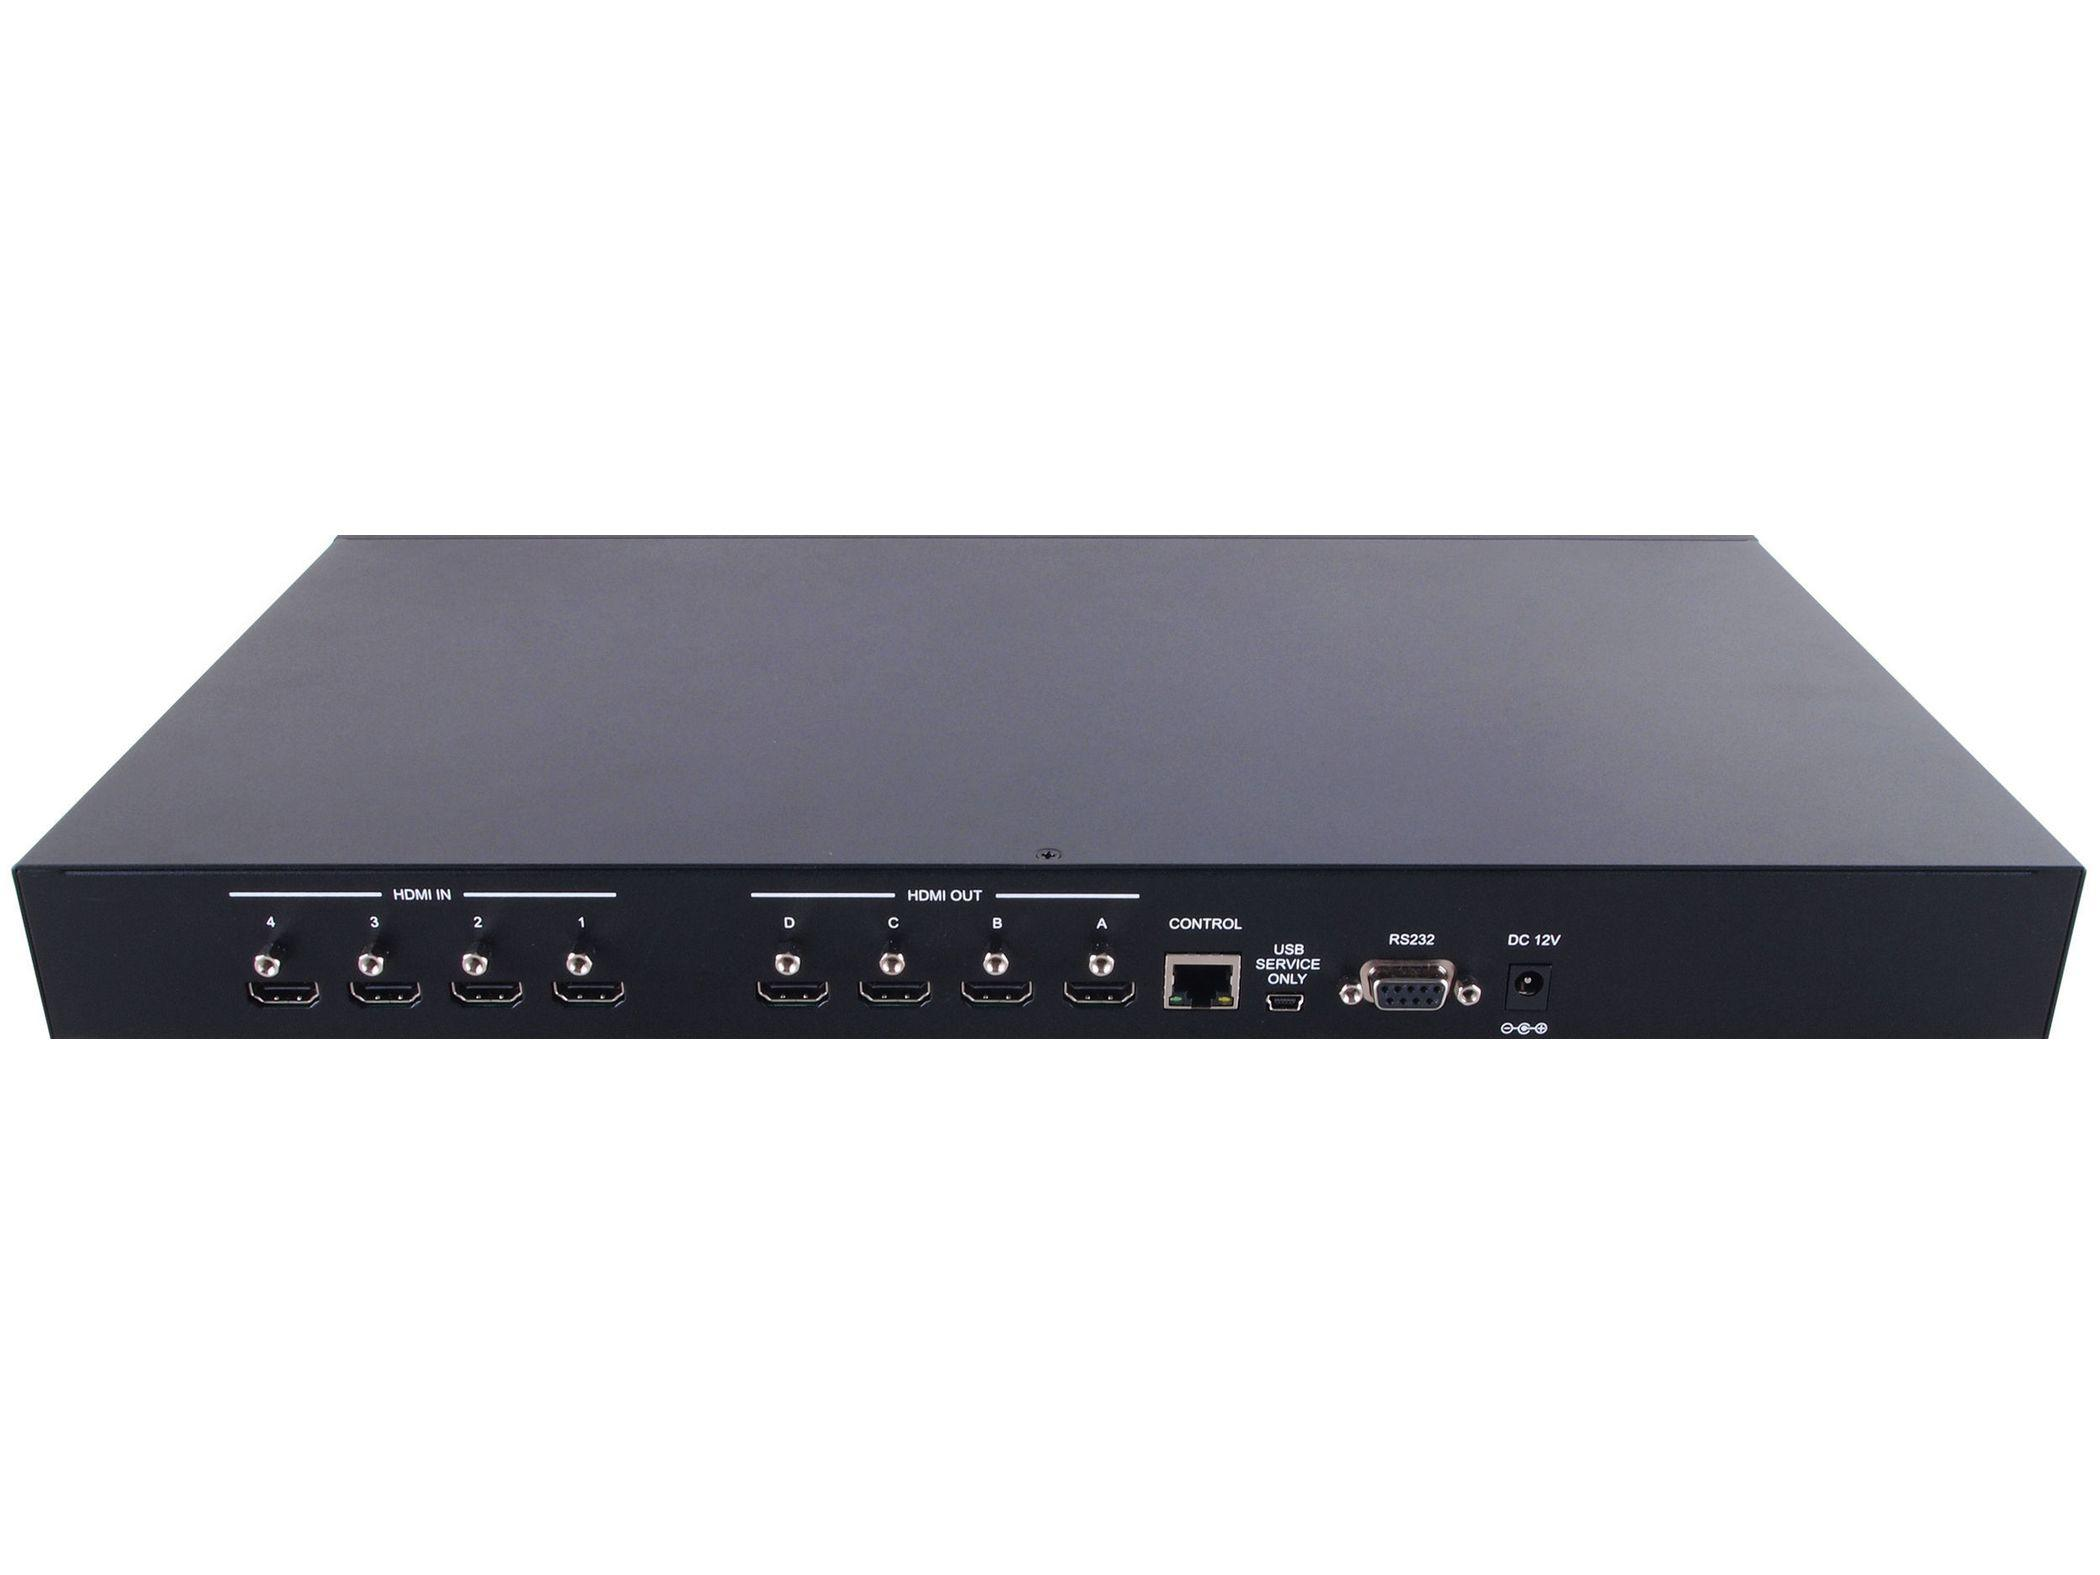 ANI-QUAD 4x4 HDMI Video Wall Processor and Matrix Switch by A-NeuVideo